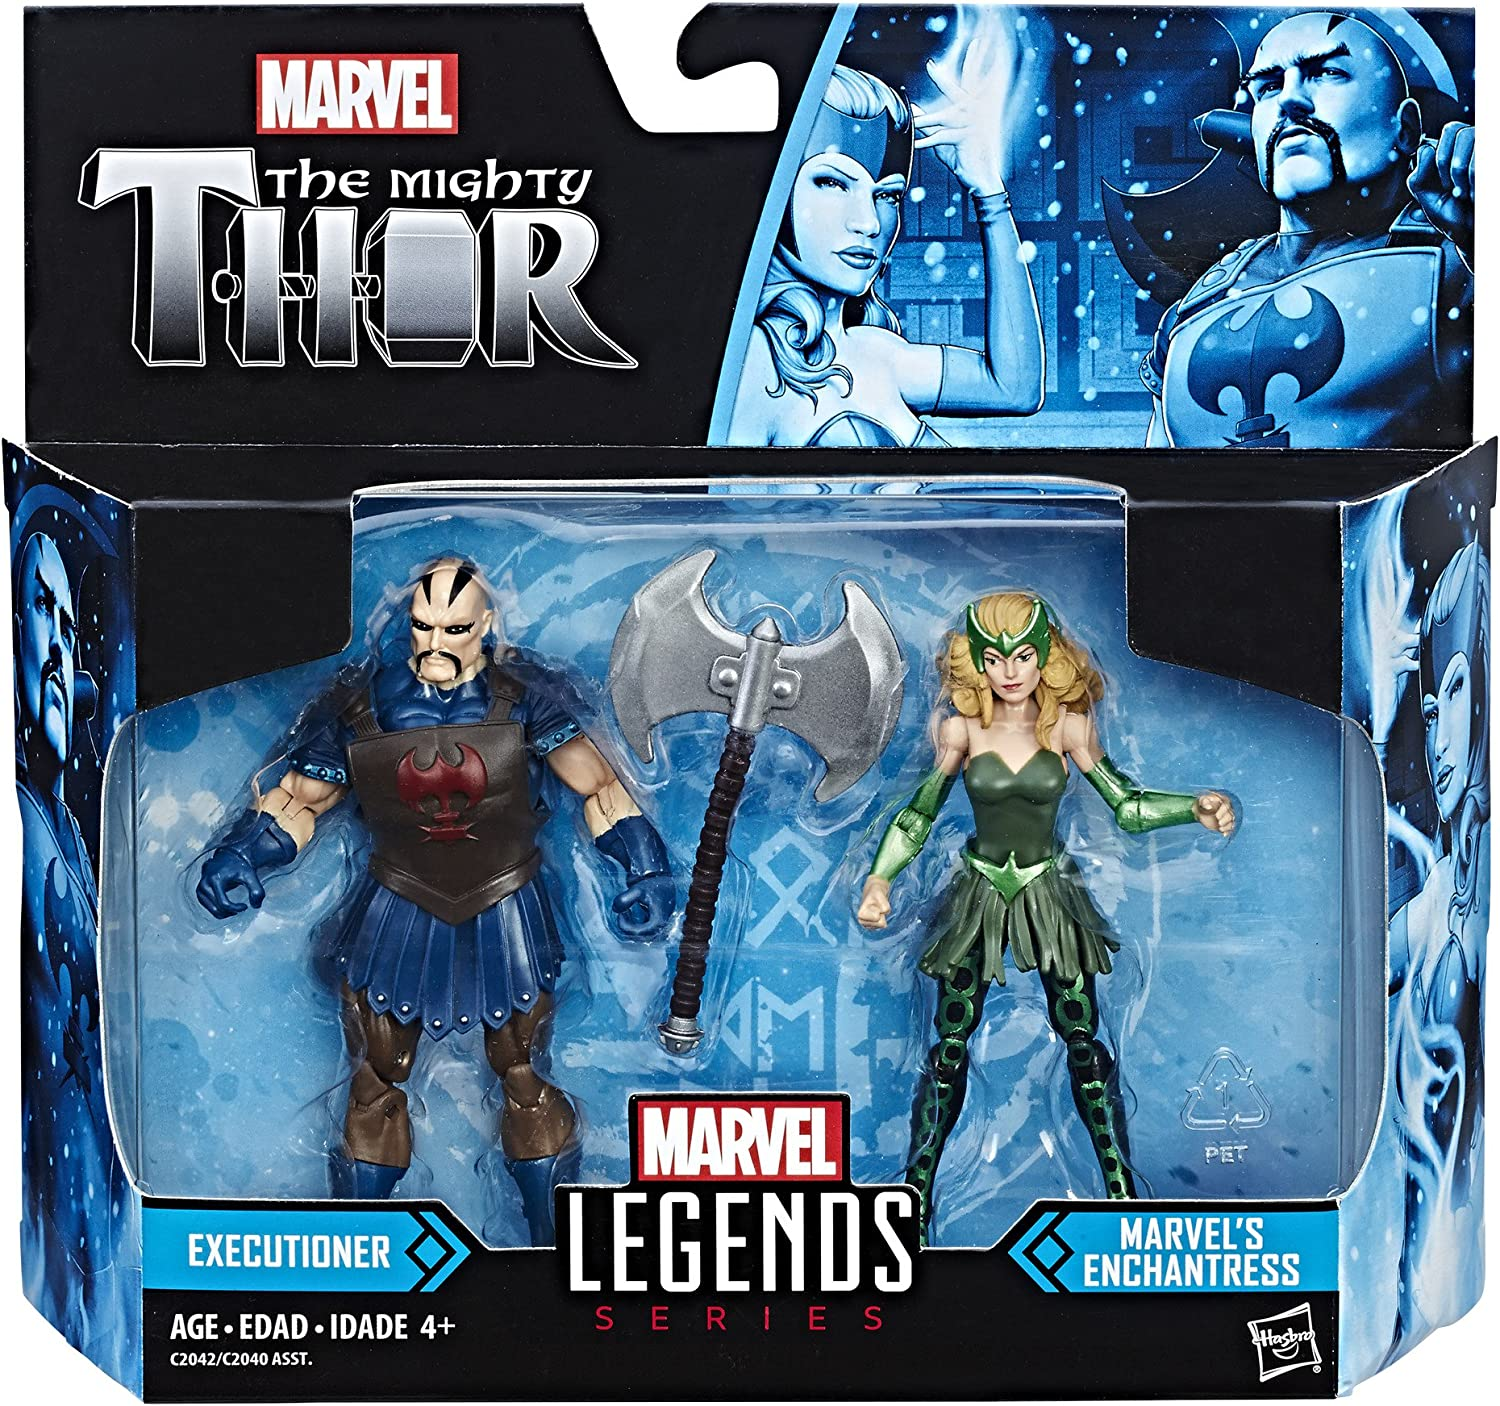 MARVEL LEGENDS SÉRIE FIGURINE DE 10 CM MARVEL/'S ENCHANTRESS SÉRIE THOR EN LOOSE